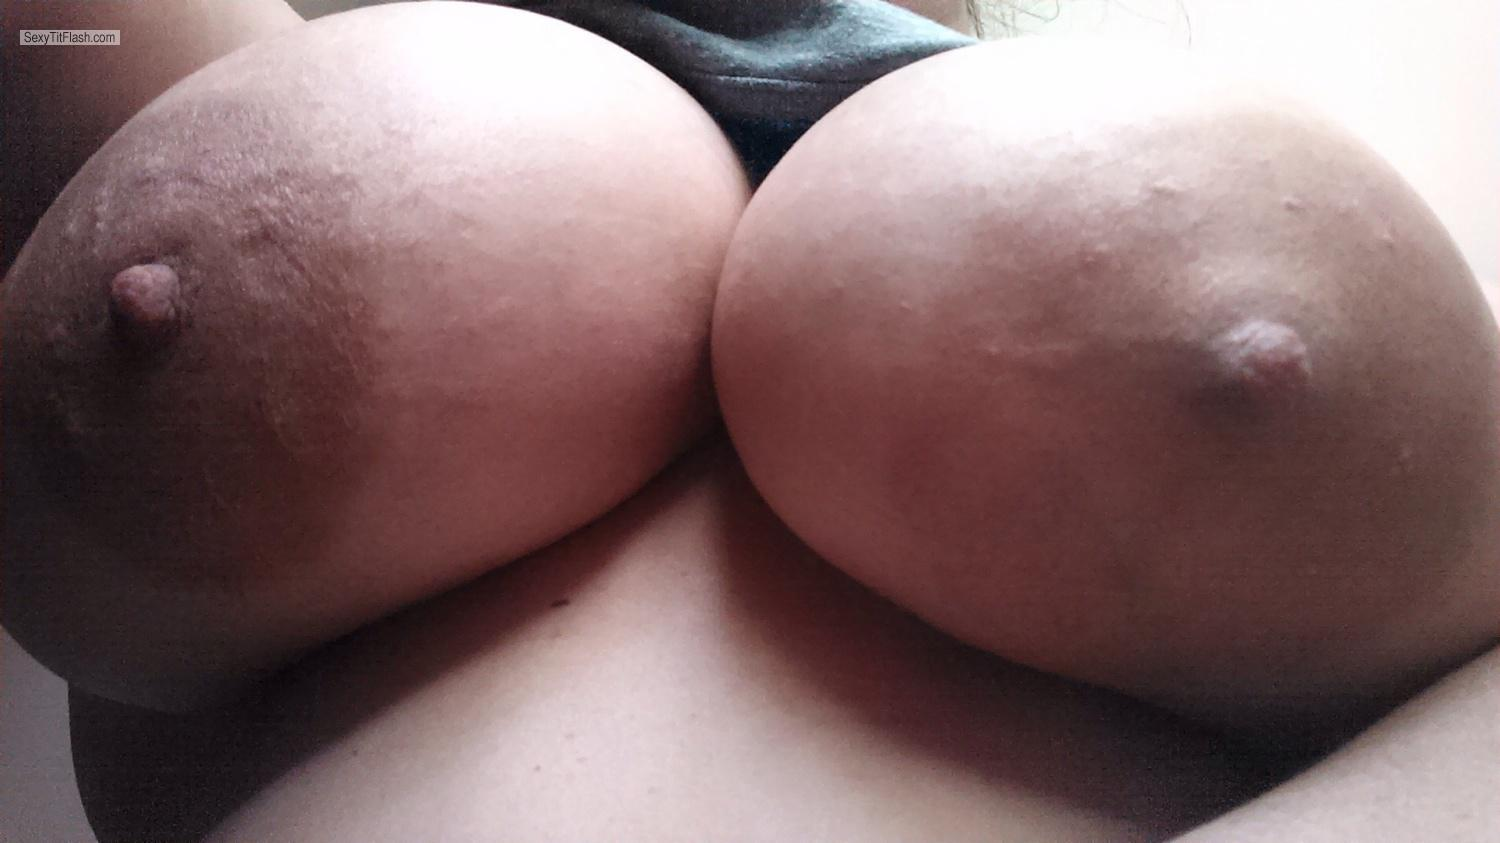 Tit Flash: My Very Big Tits By IPhone (Selfie) - DDwife from United States